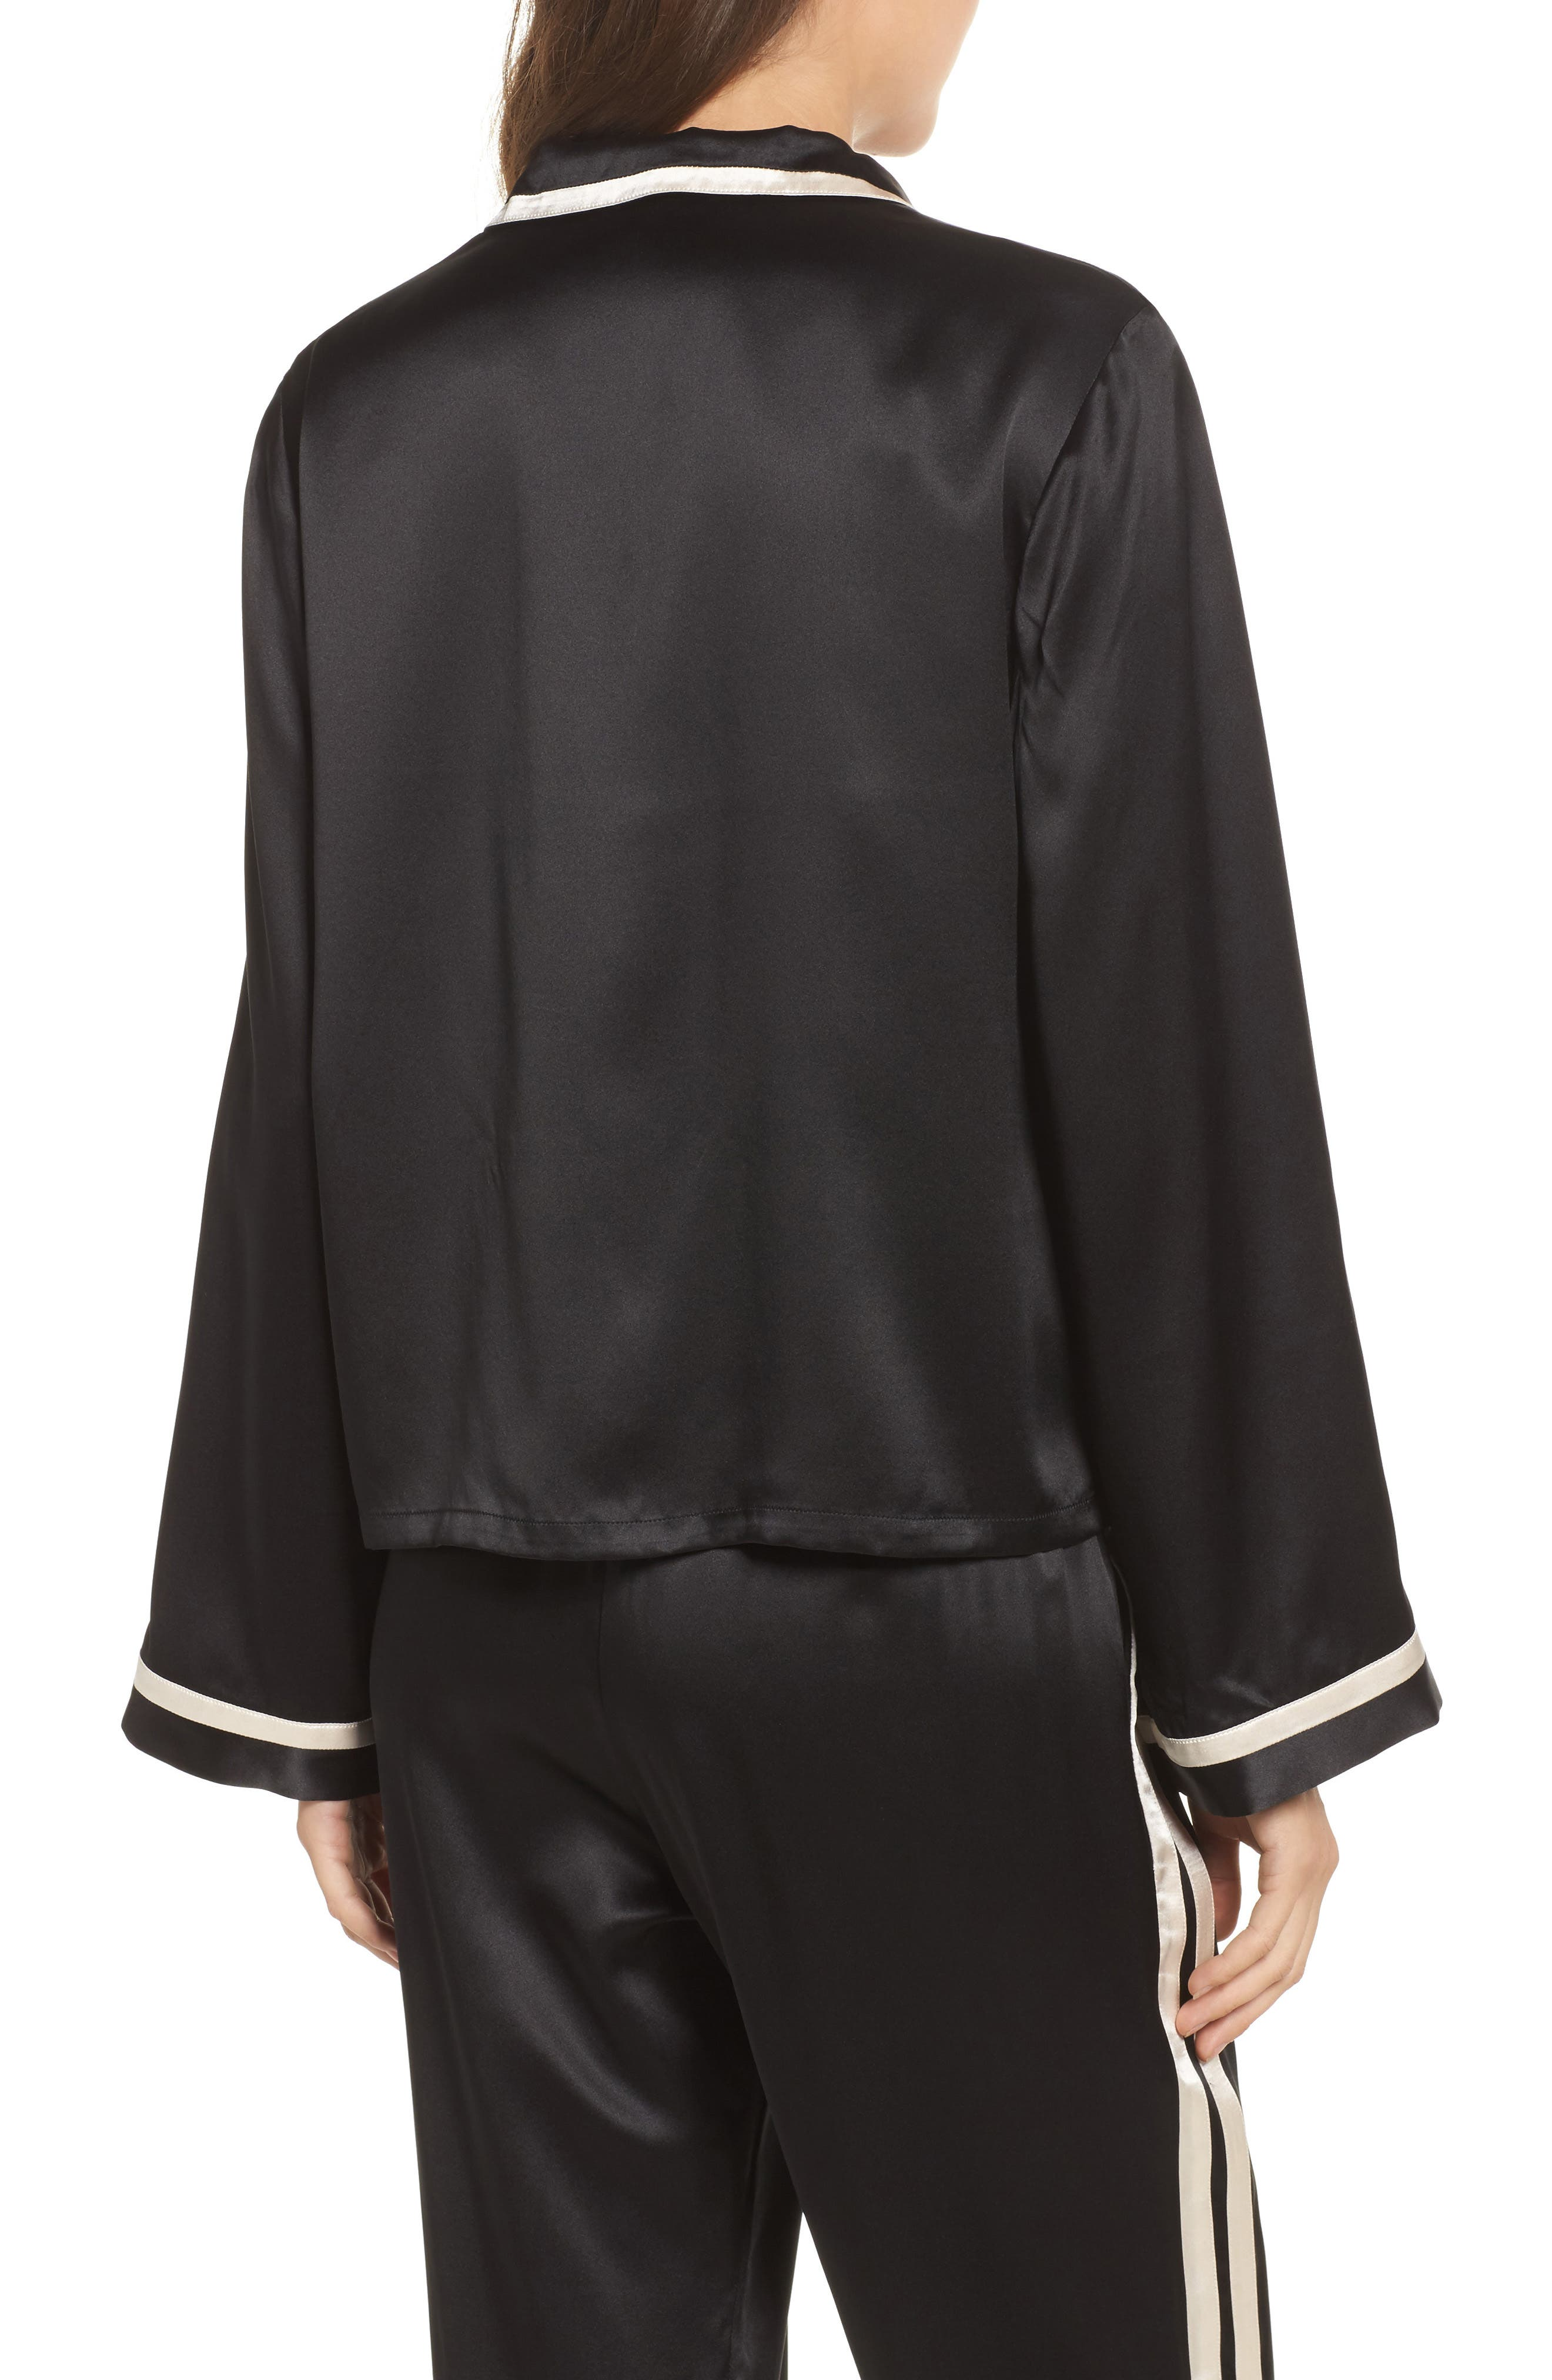 Ruthie Silk Charmeuse Pajama Top,                             Alternate thumbnail 2, color,                             Noir/ Vanilla